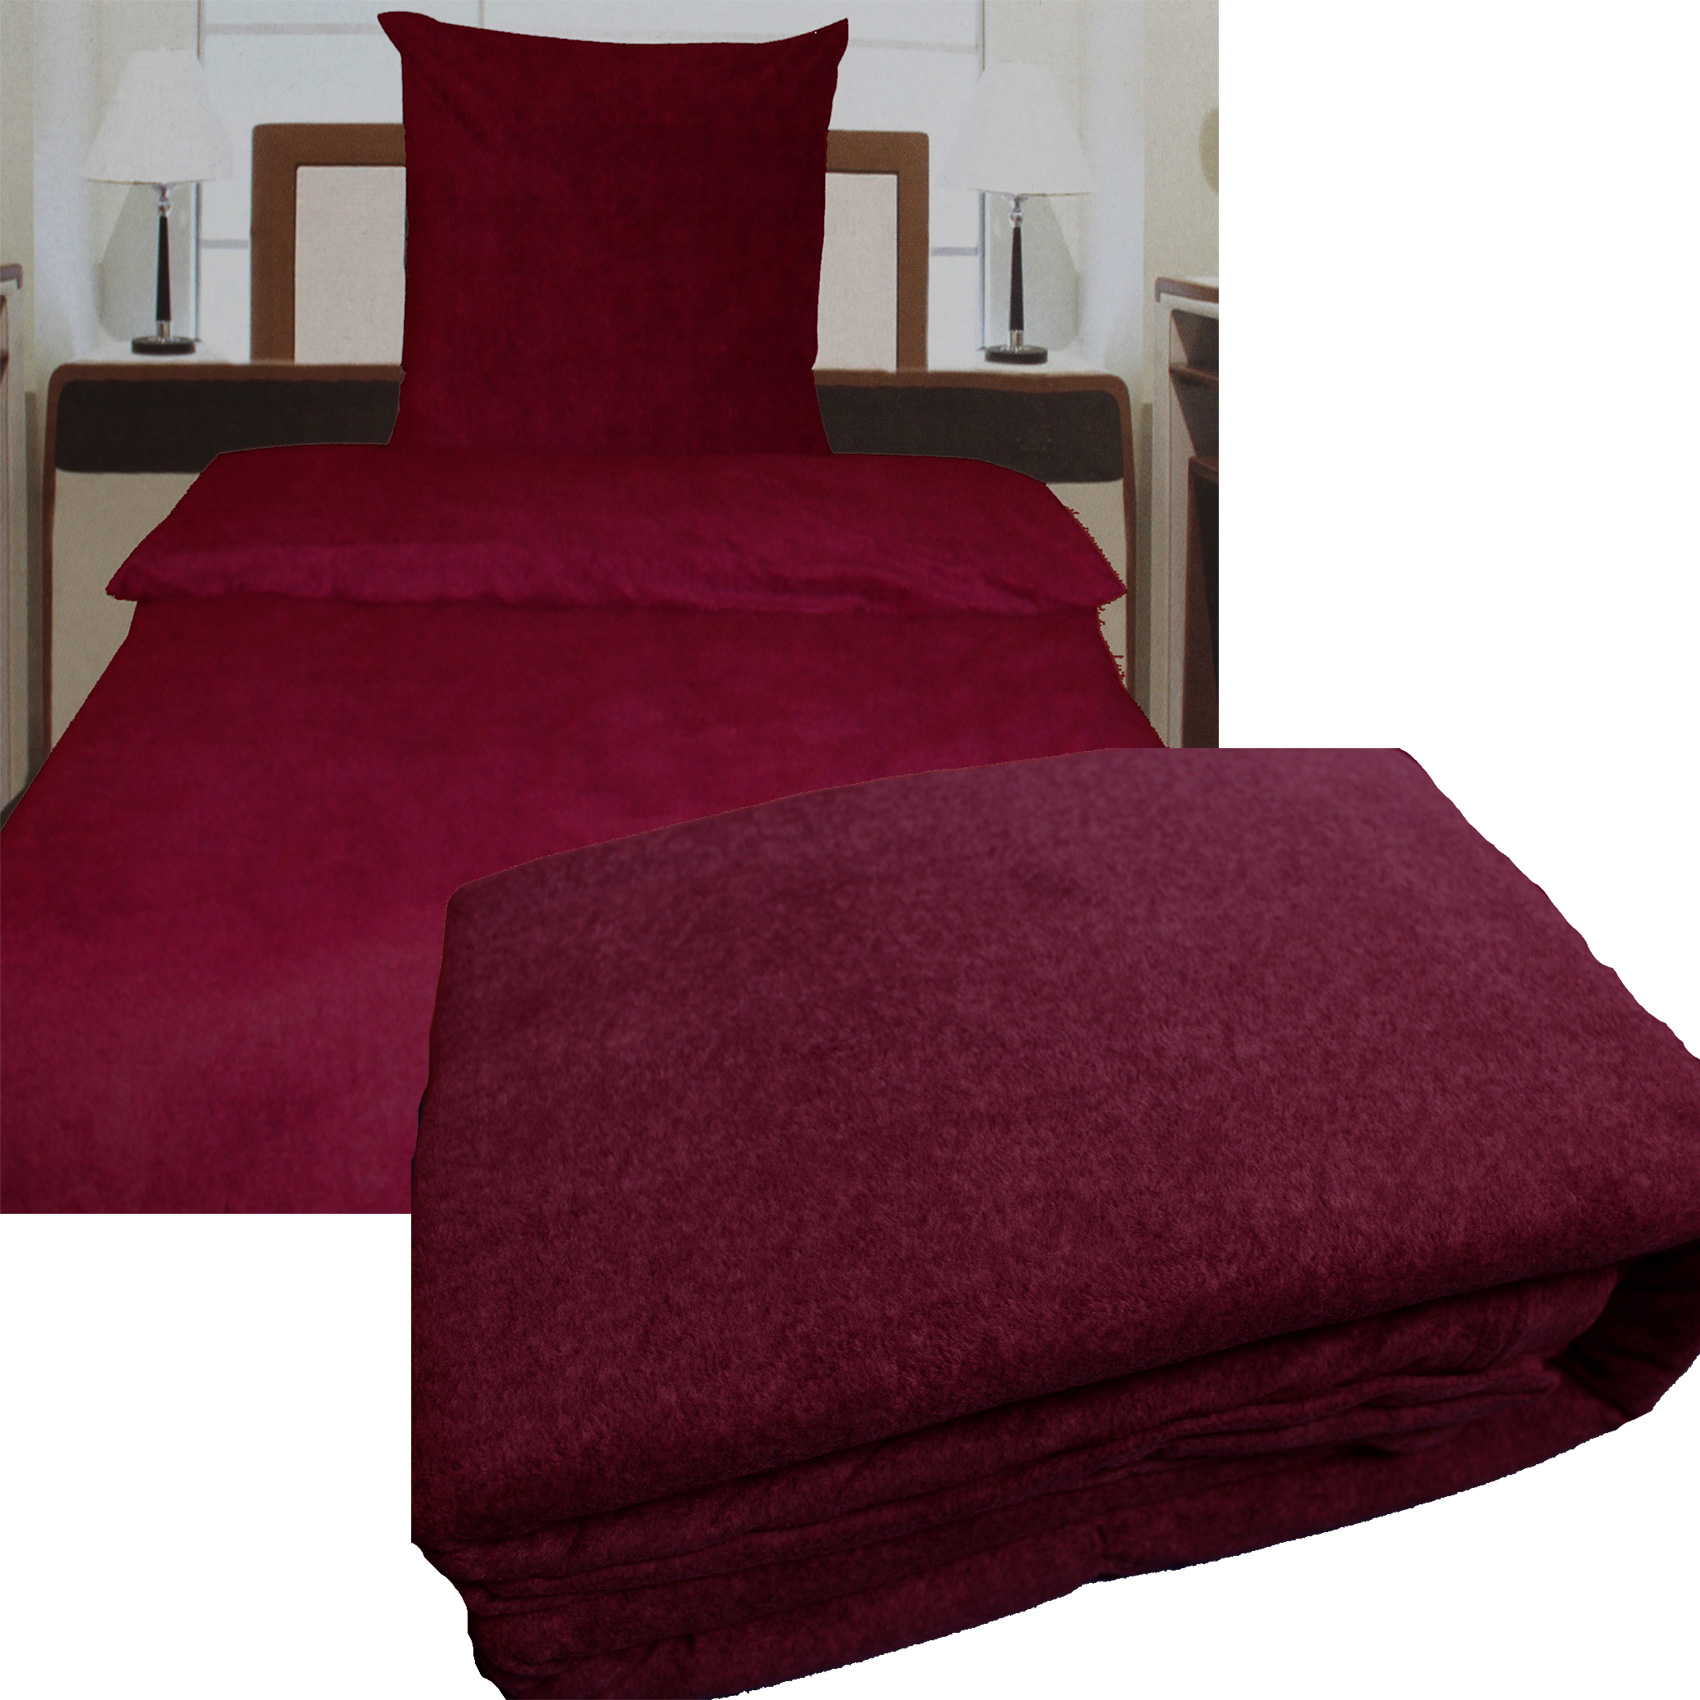 fleece winter bettw sche 135 x 200 80x80 cm lila beere. Black Bedroom Furniture Sets. Home Design Ideas